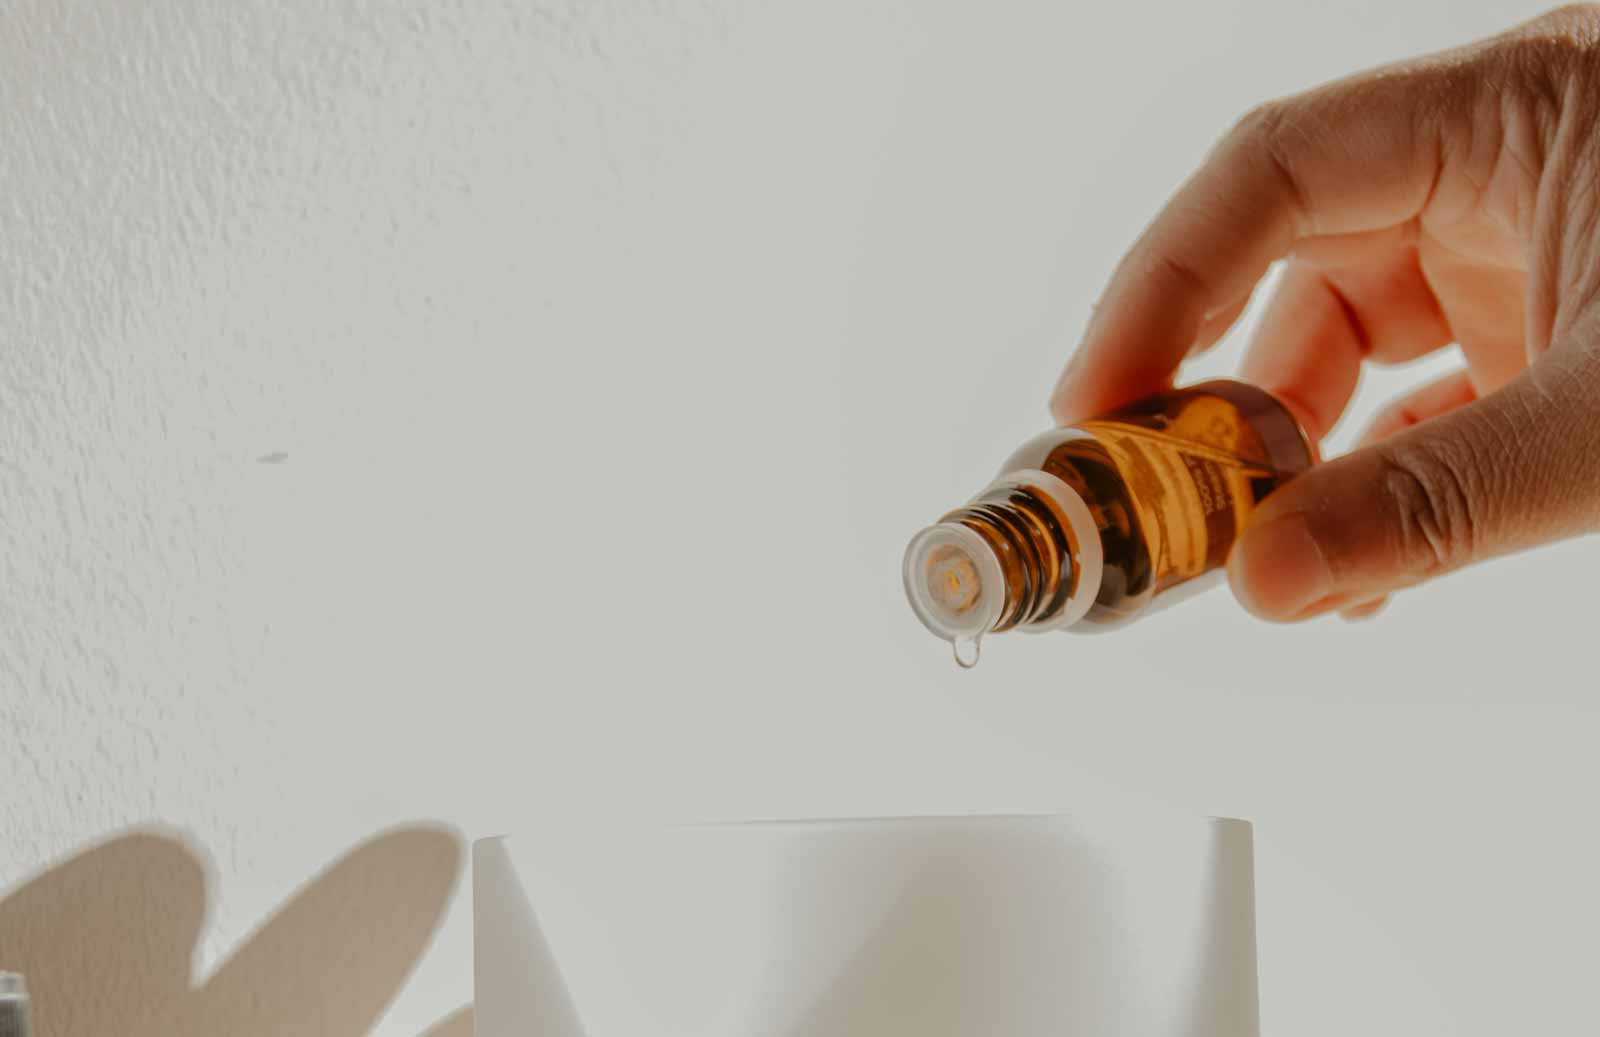 Putting essential oils in a humidifier